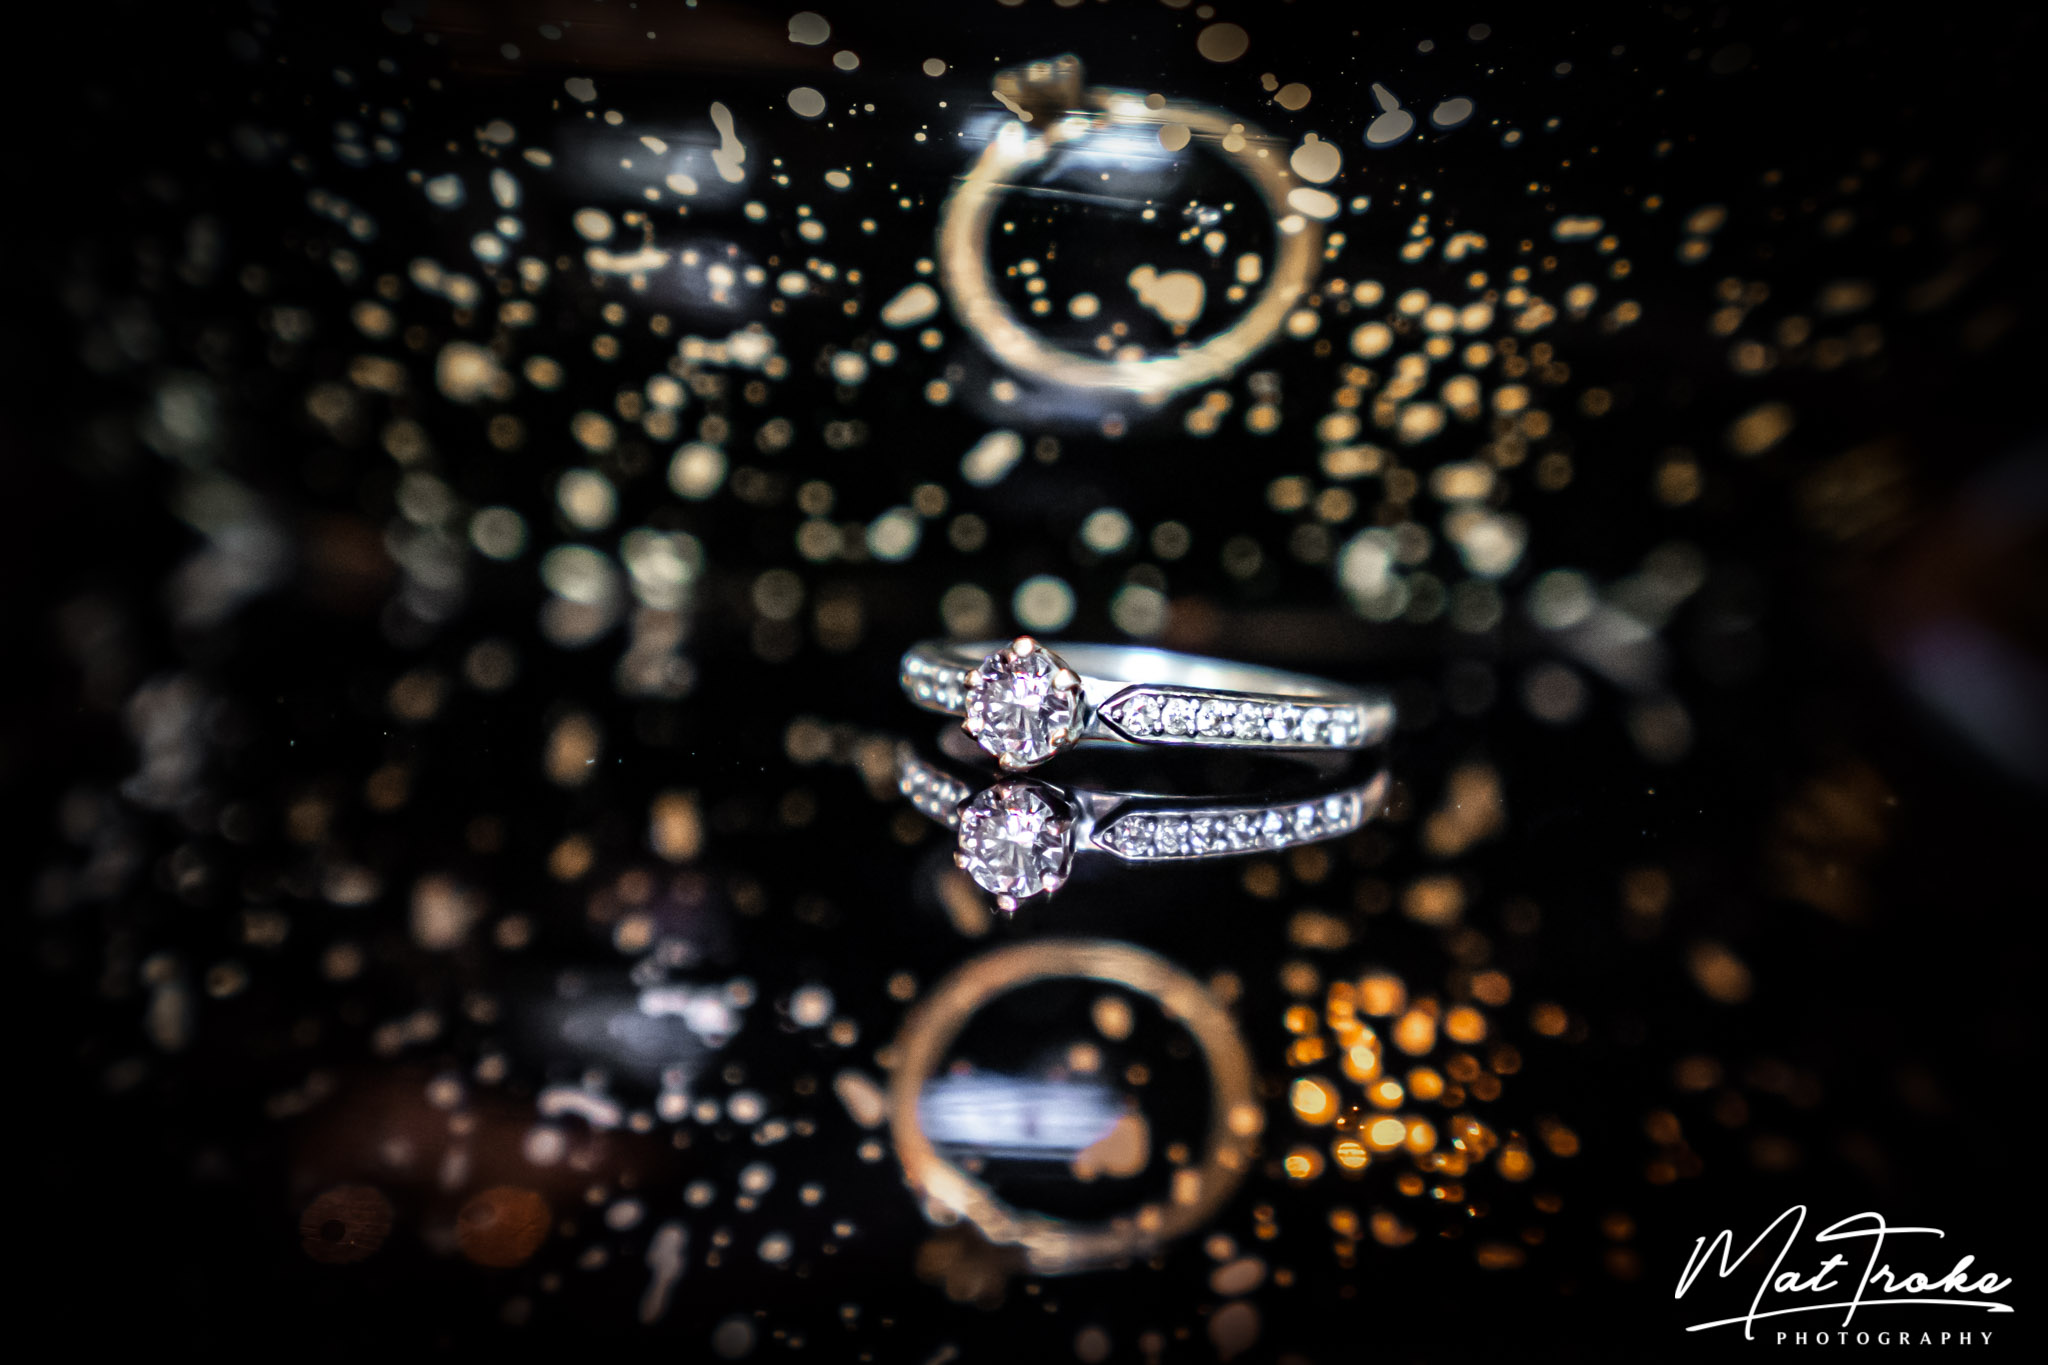 glossop-crystal-ring_reflection_ballroom-wedding-bride-prep-photographer-photography-married-church